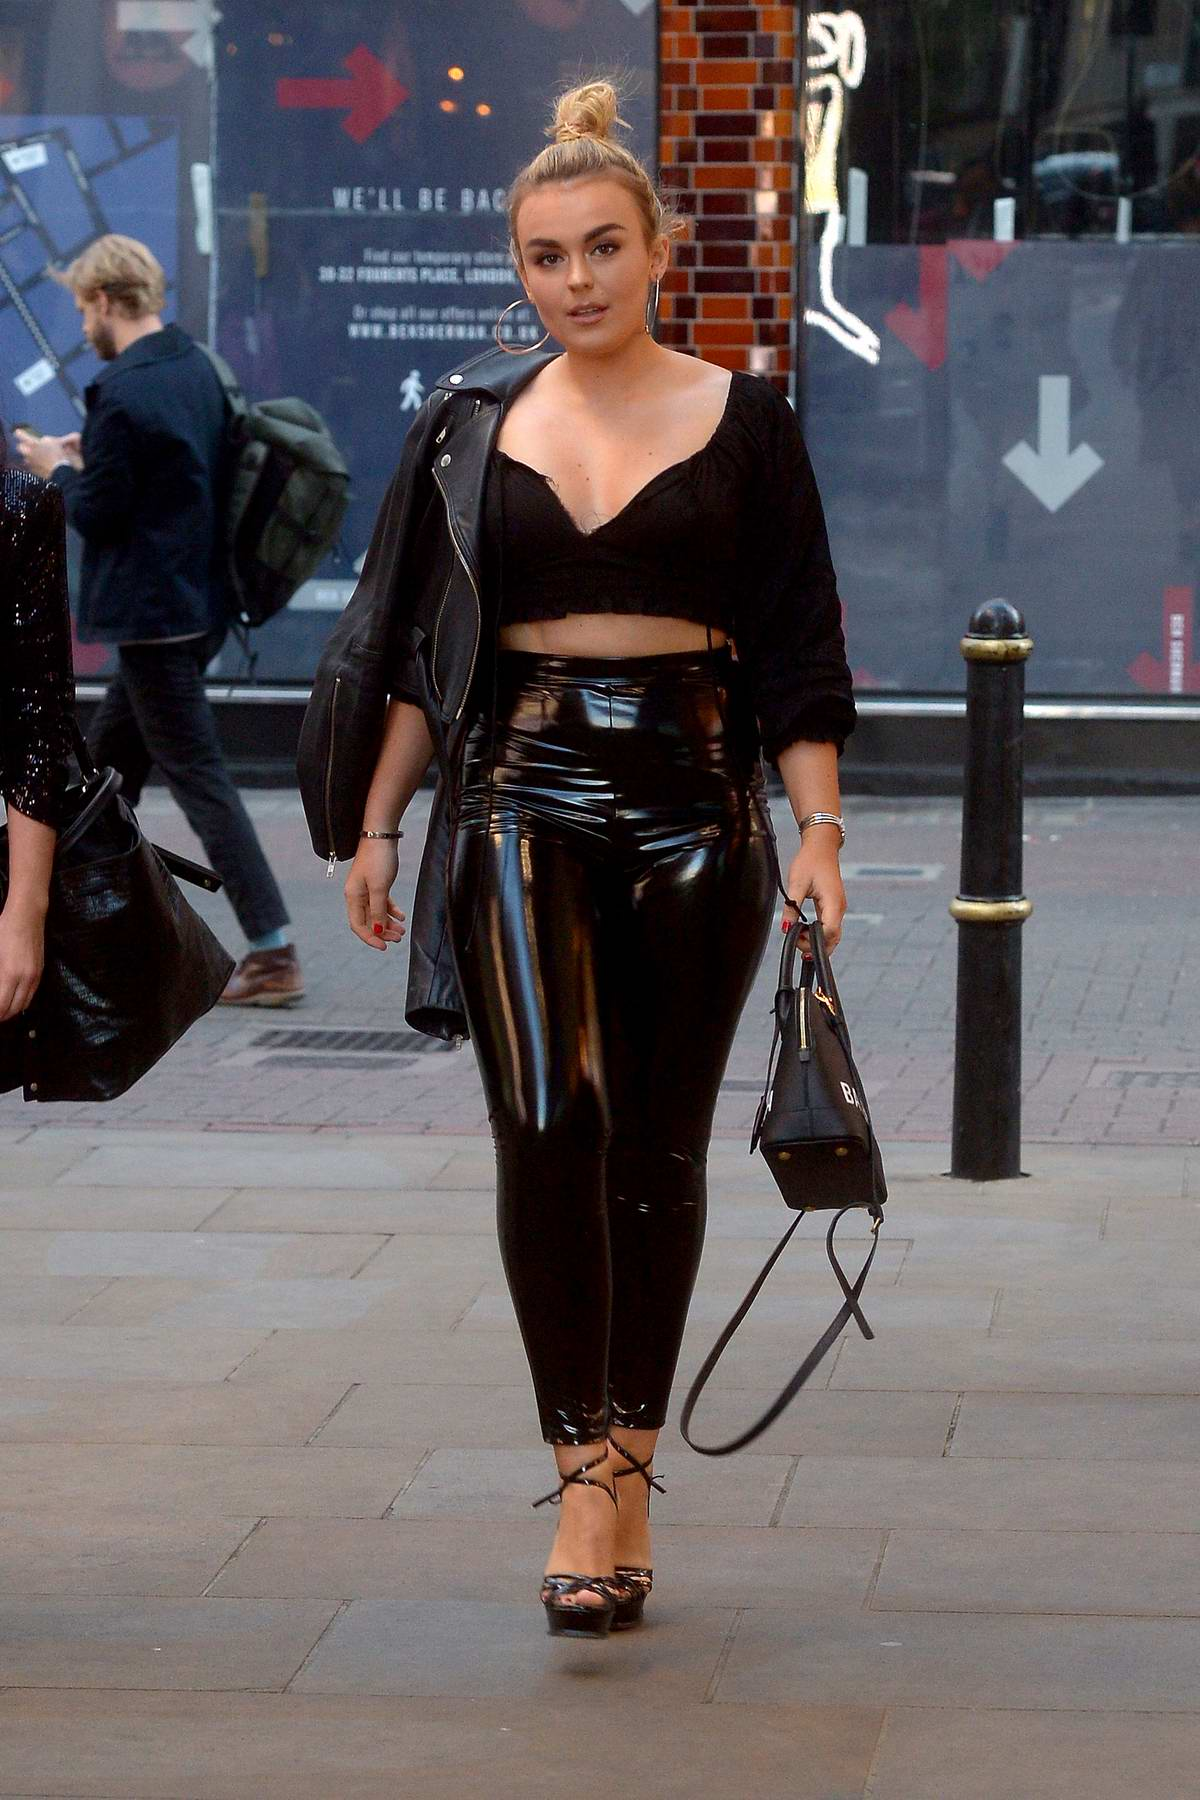 Tallia Storm shows off her style in all black while out in Carnaby Street, London, UK